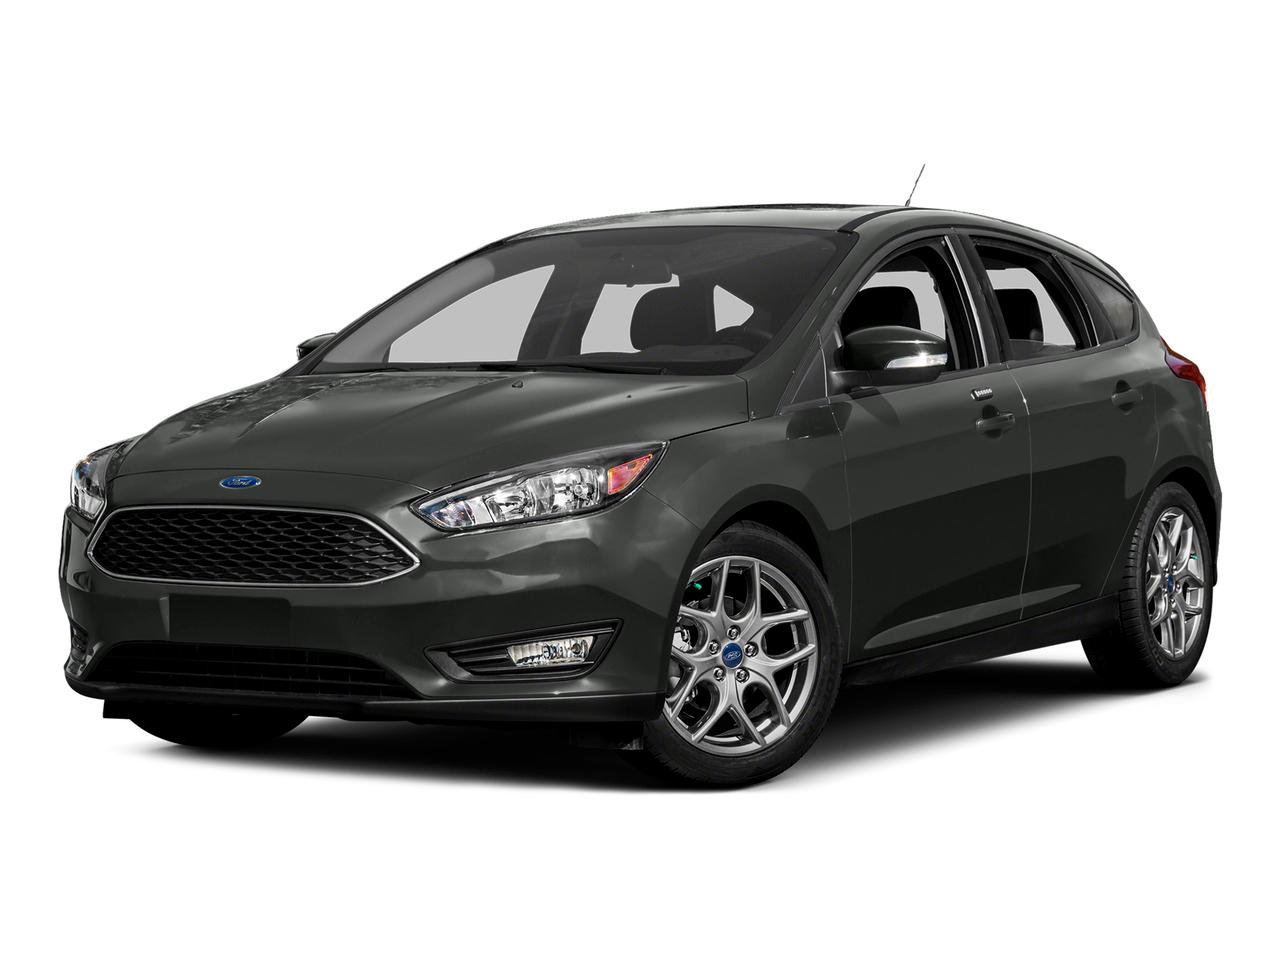 2015 Ford Focus Vehicle Photo in Allentown, PA 18103